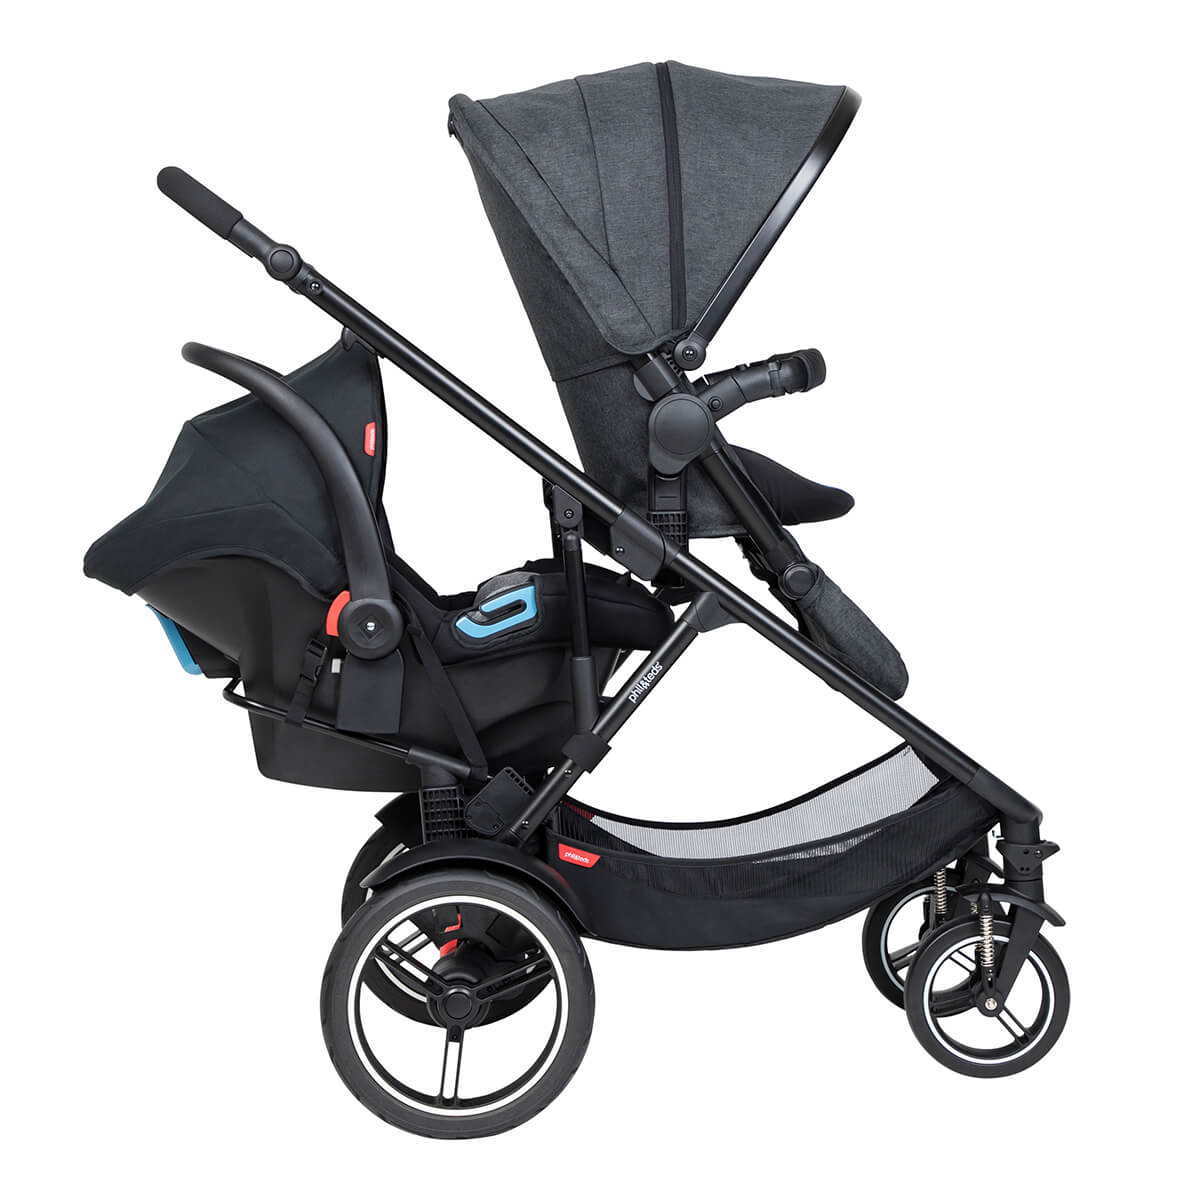 https://cdn.accentuate.io/4546158887017/19119322726505/philteds-voyager-buggy-in-forward-facing-mode-with-travel-system-in-the-rear-v1625778492960.jpg?1200x1200